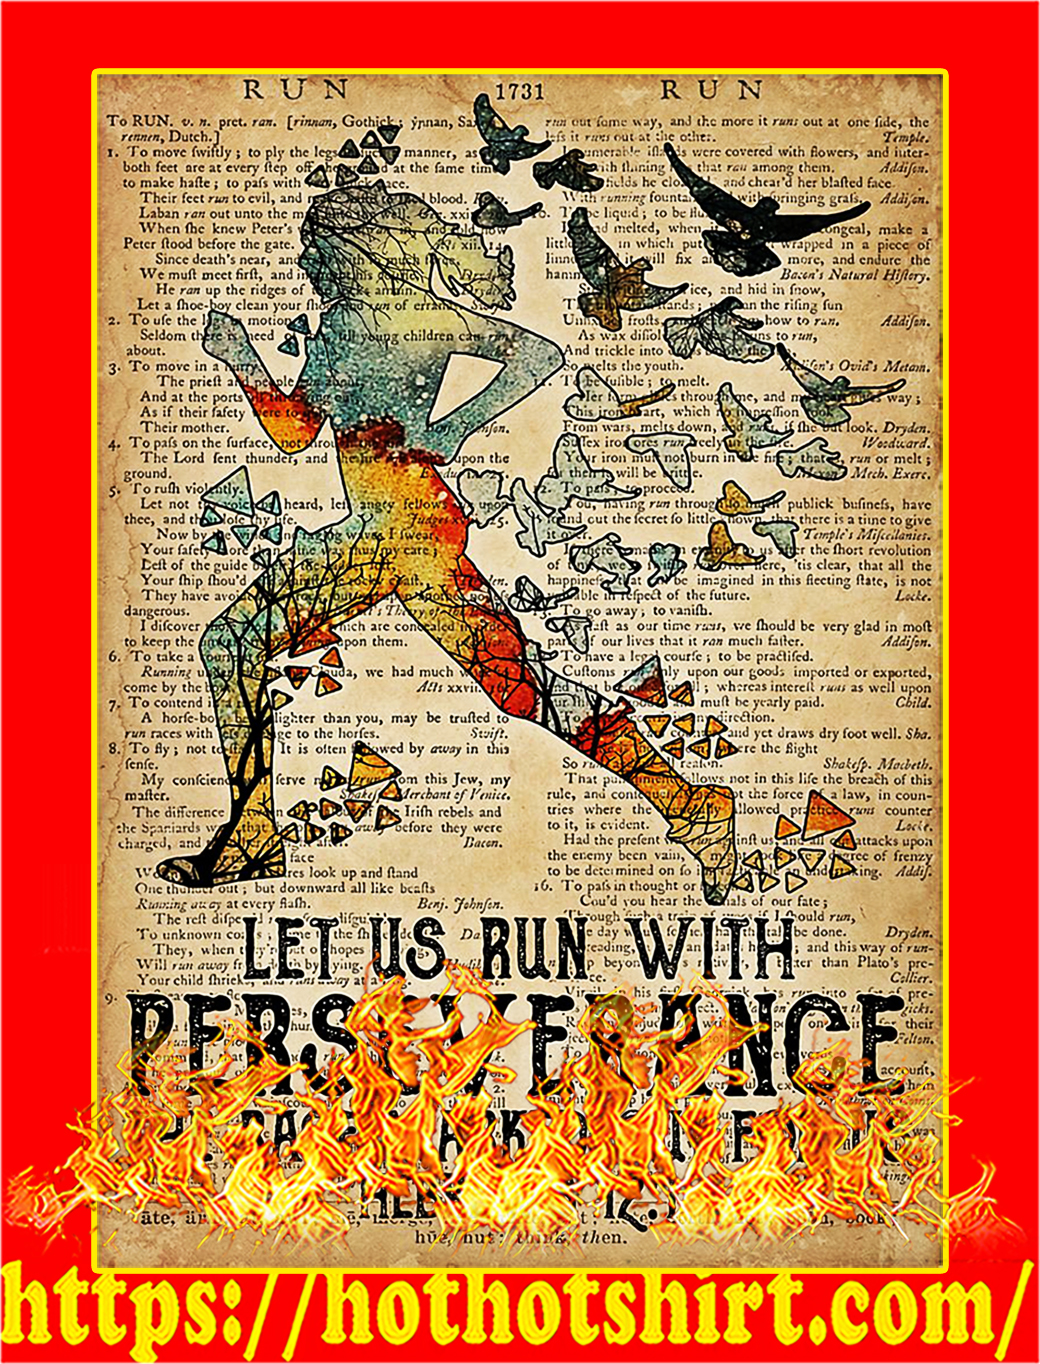 Running let us run with perseverance poster - A1